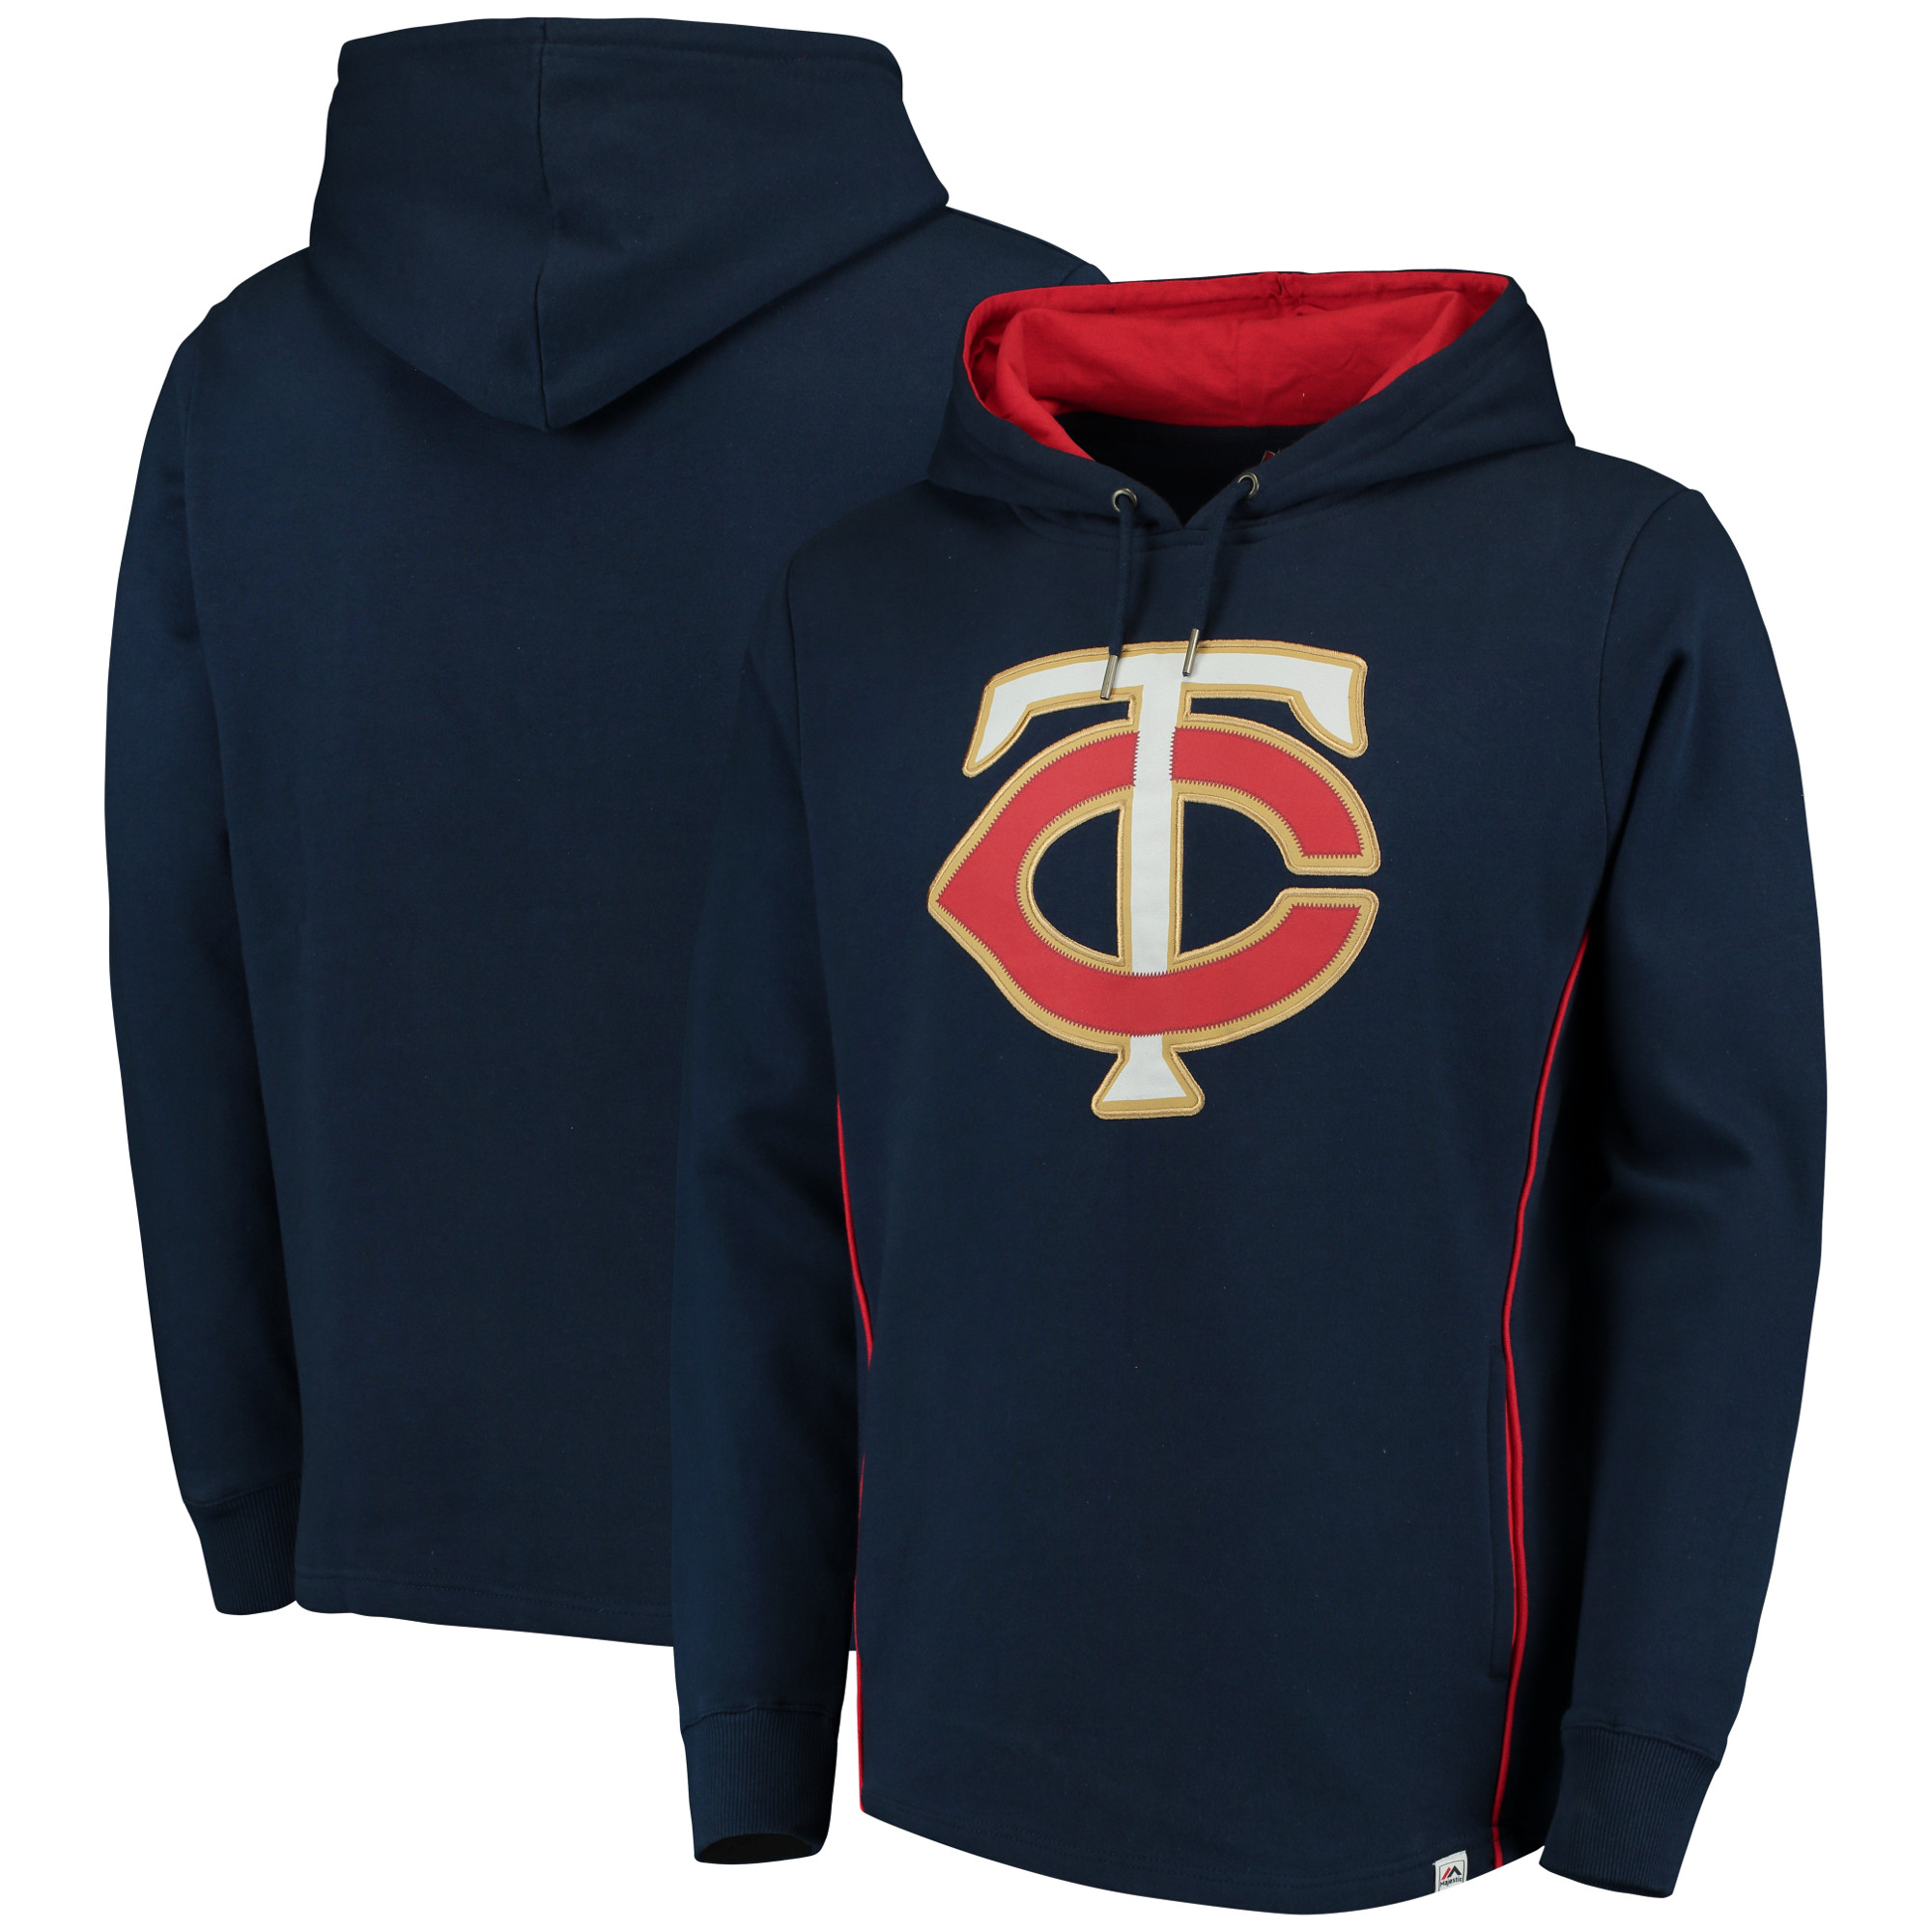 Minnesota Twins Majestic Lefty/Righty Pullover Hoodie - Navy